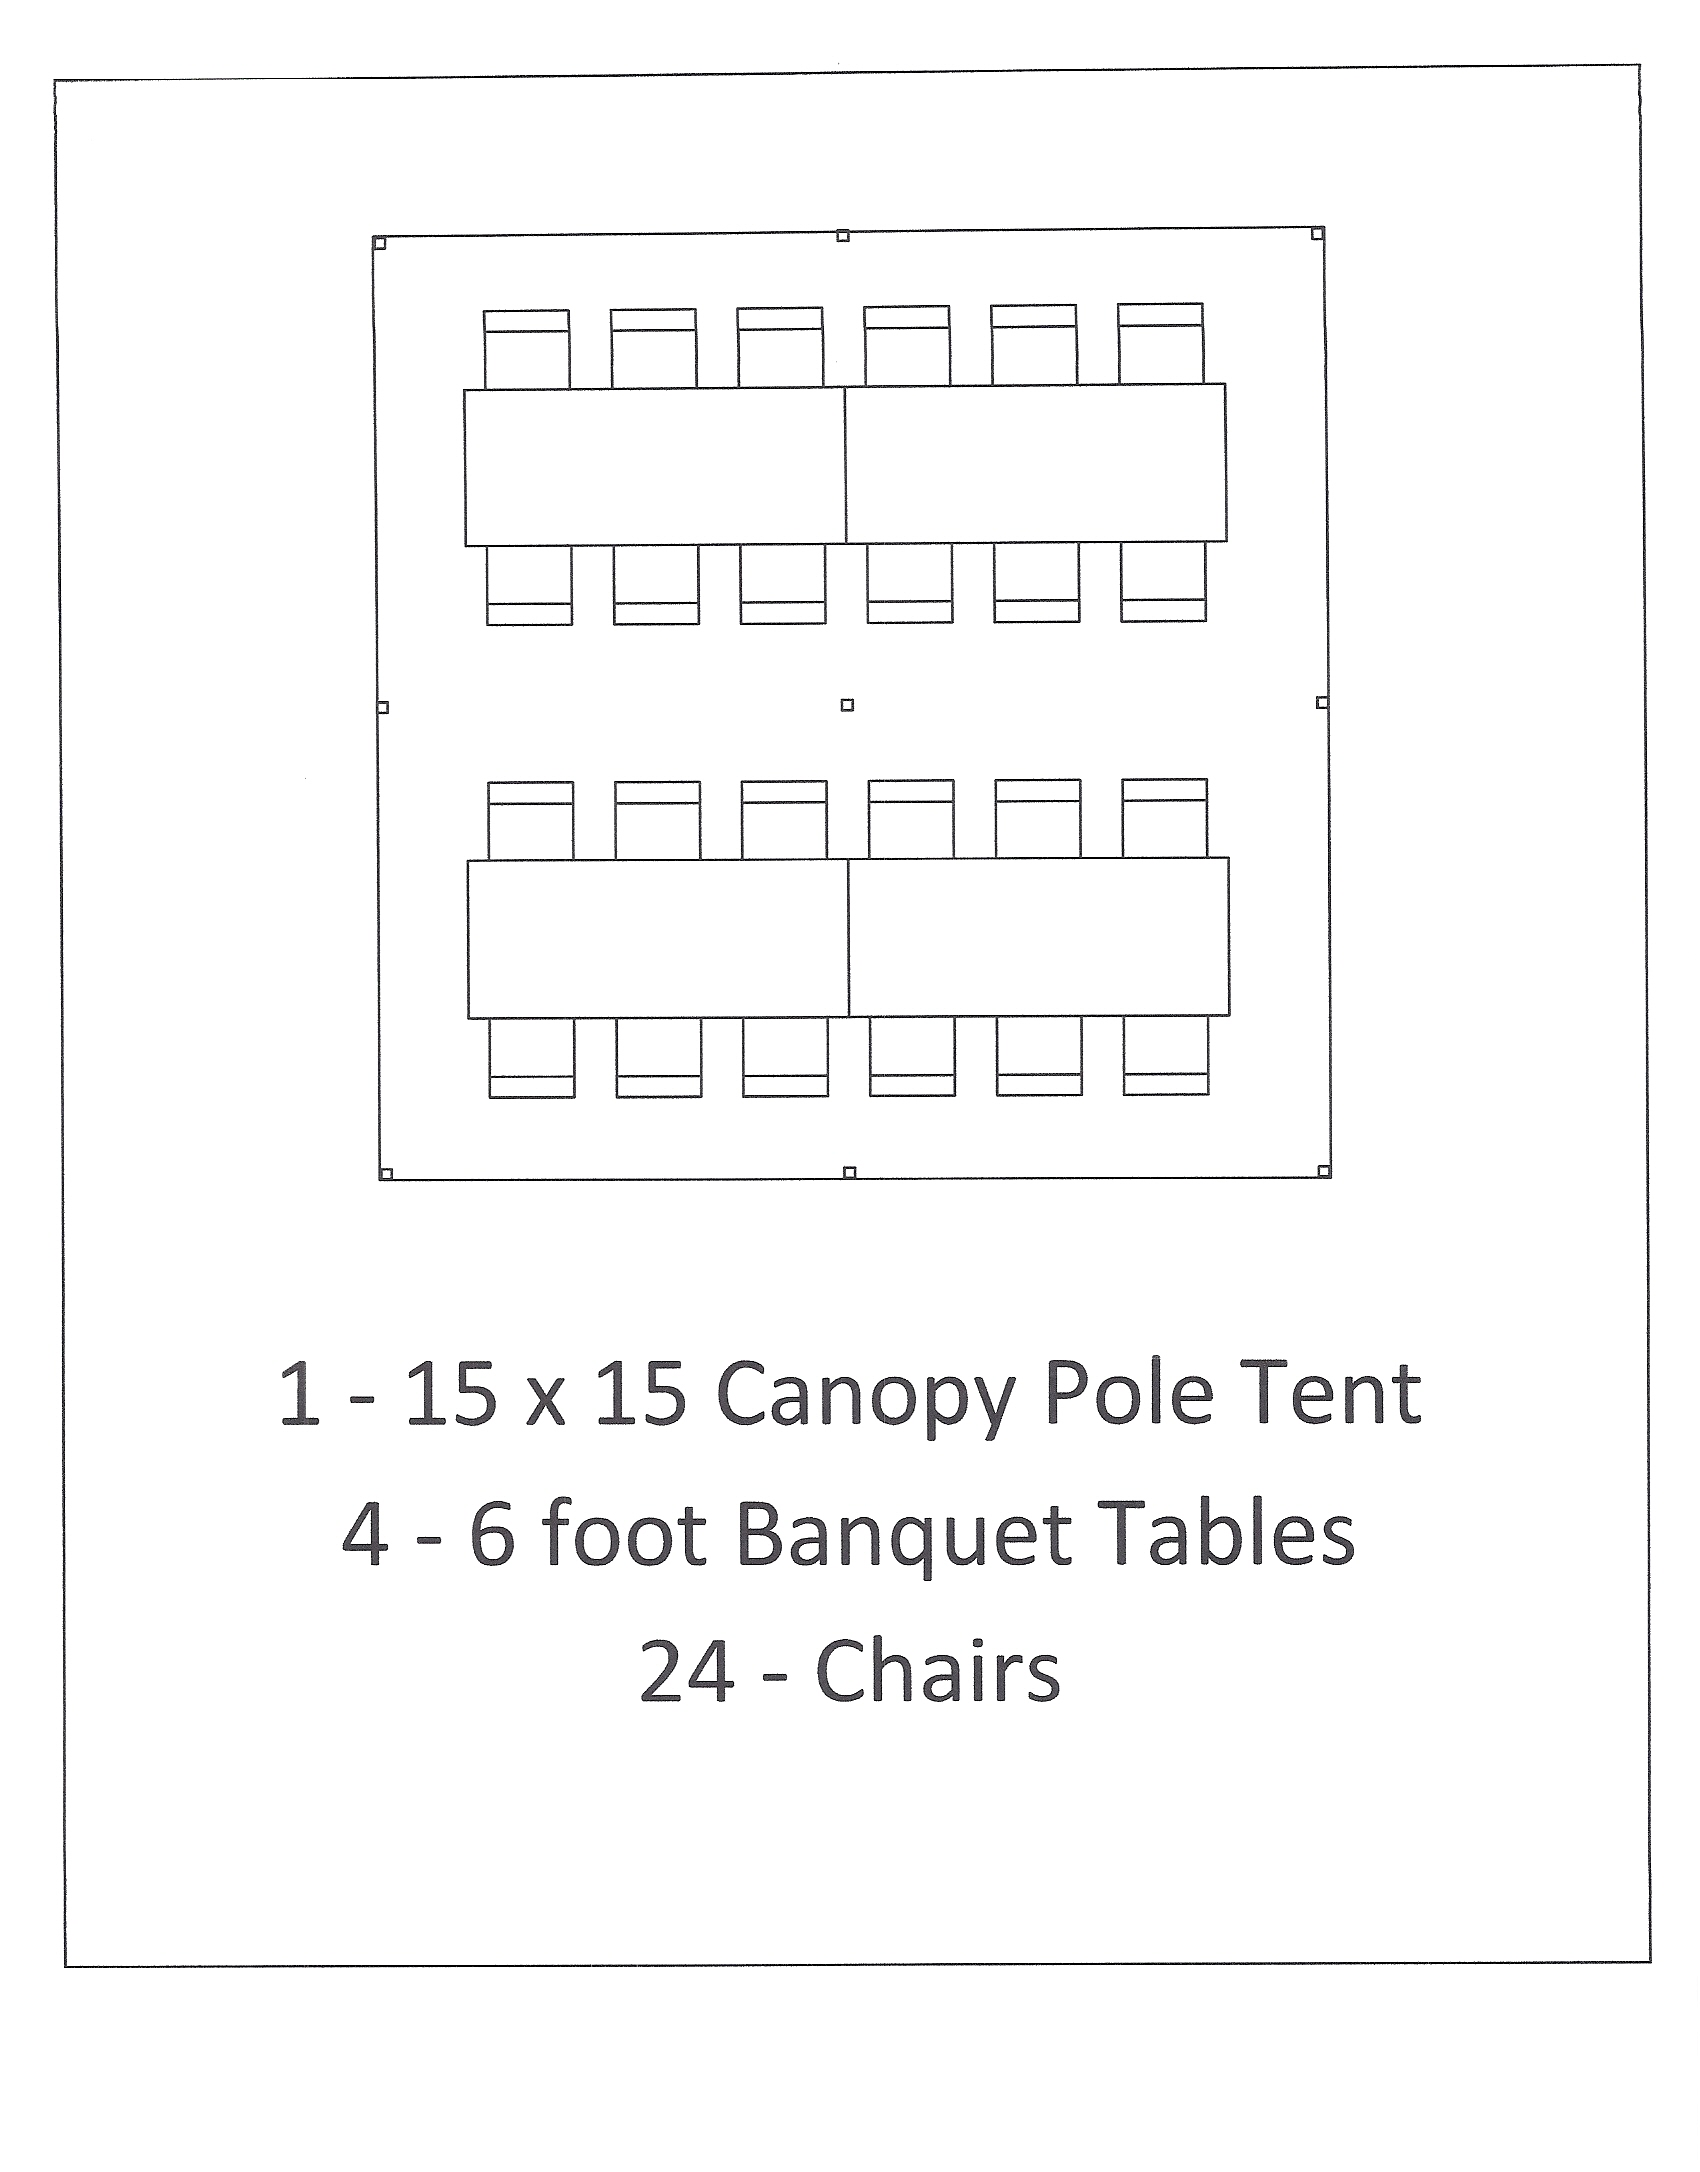 15x15 canopy pole tent with 6 foot table seating ...  sc 1 st  Canton Canopies & 15x15 Canopy Pole Tent